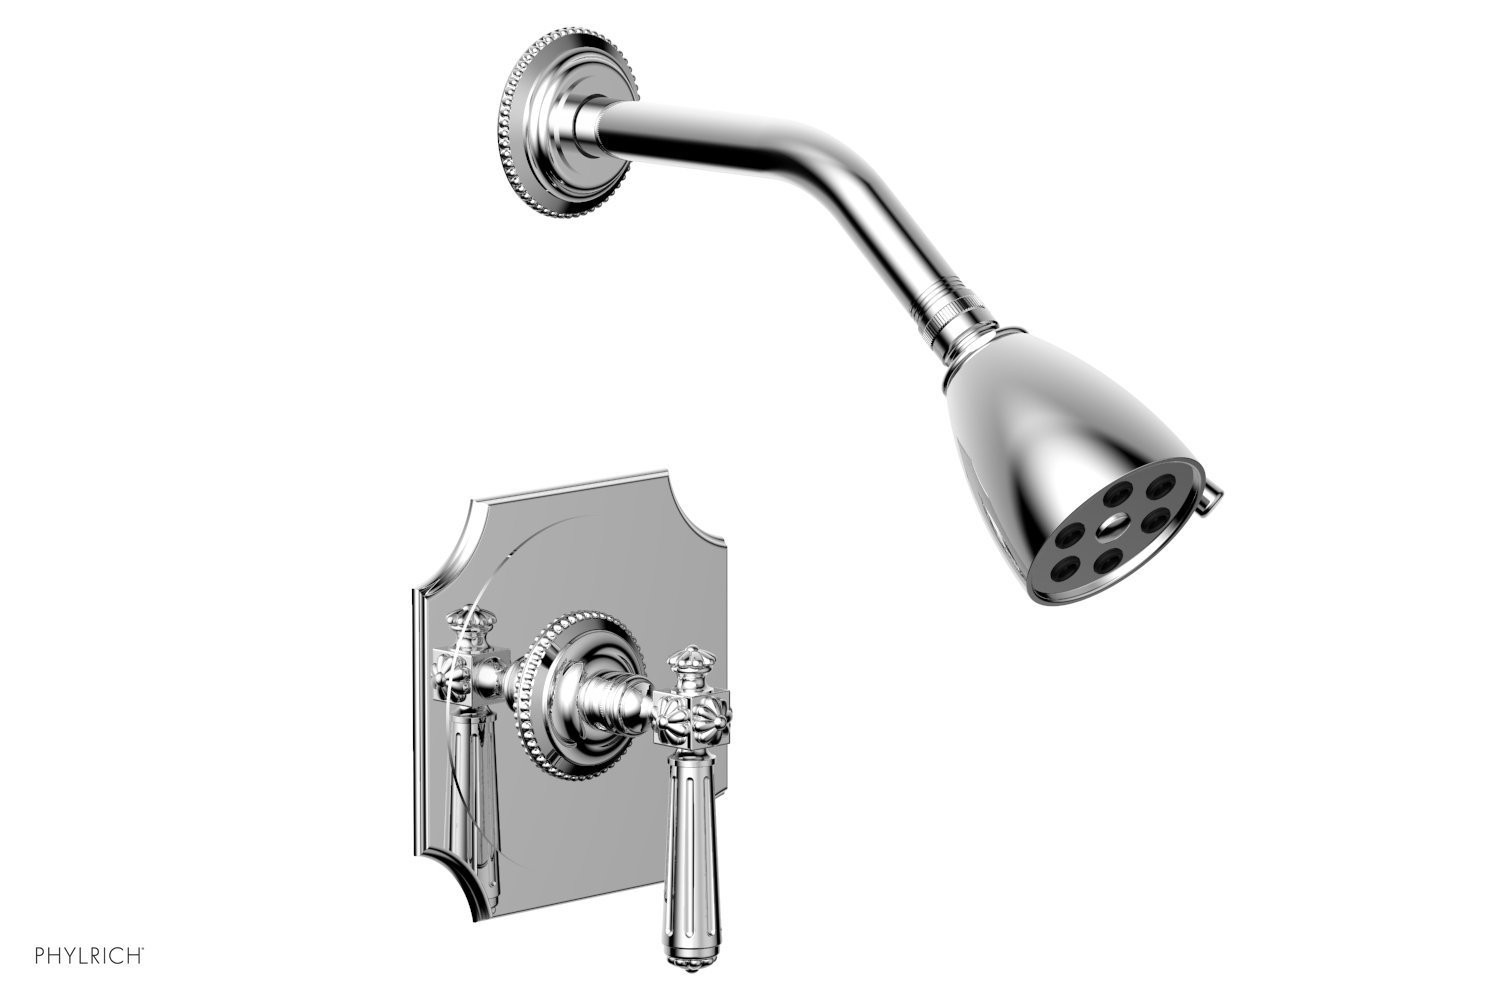 PHYLRICH 162-22 MARVELLE WALL MOUNT PRESSURE BALANCE SHOWER SET WITH LEVER HANDLE